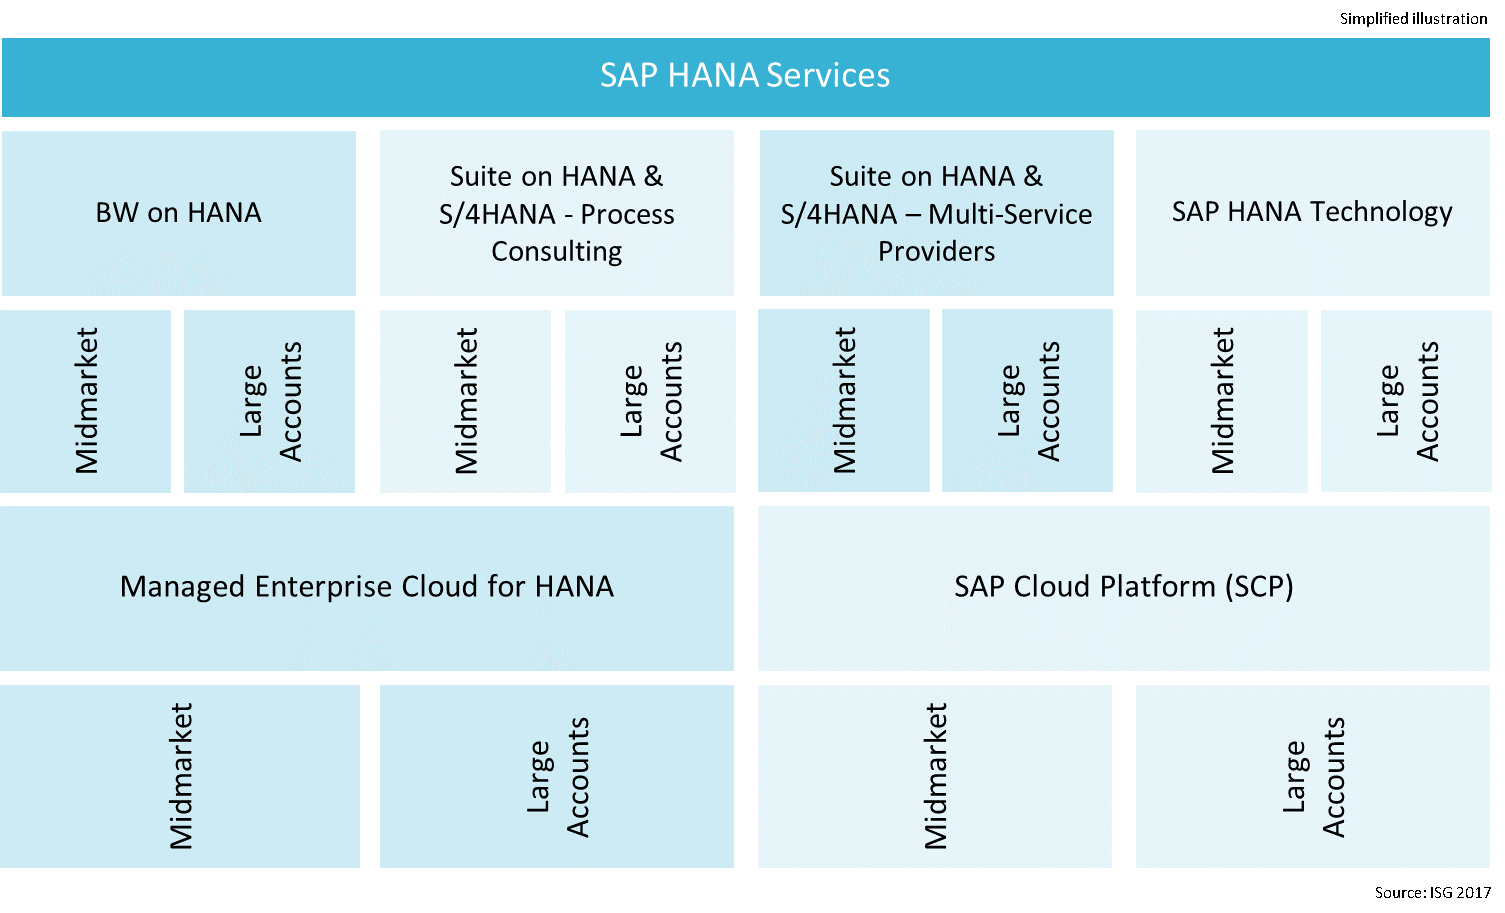 SAP HANA Services